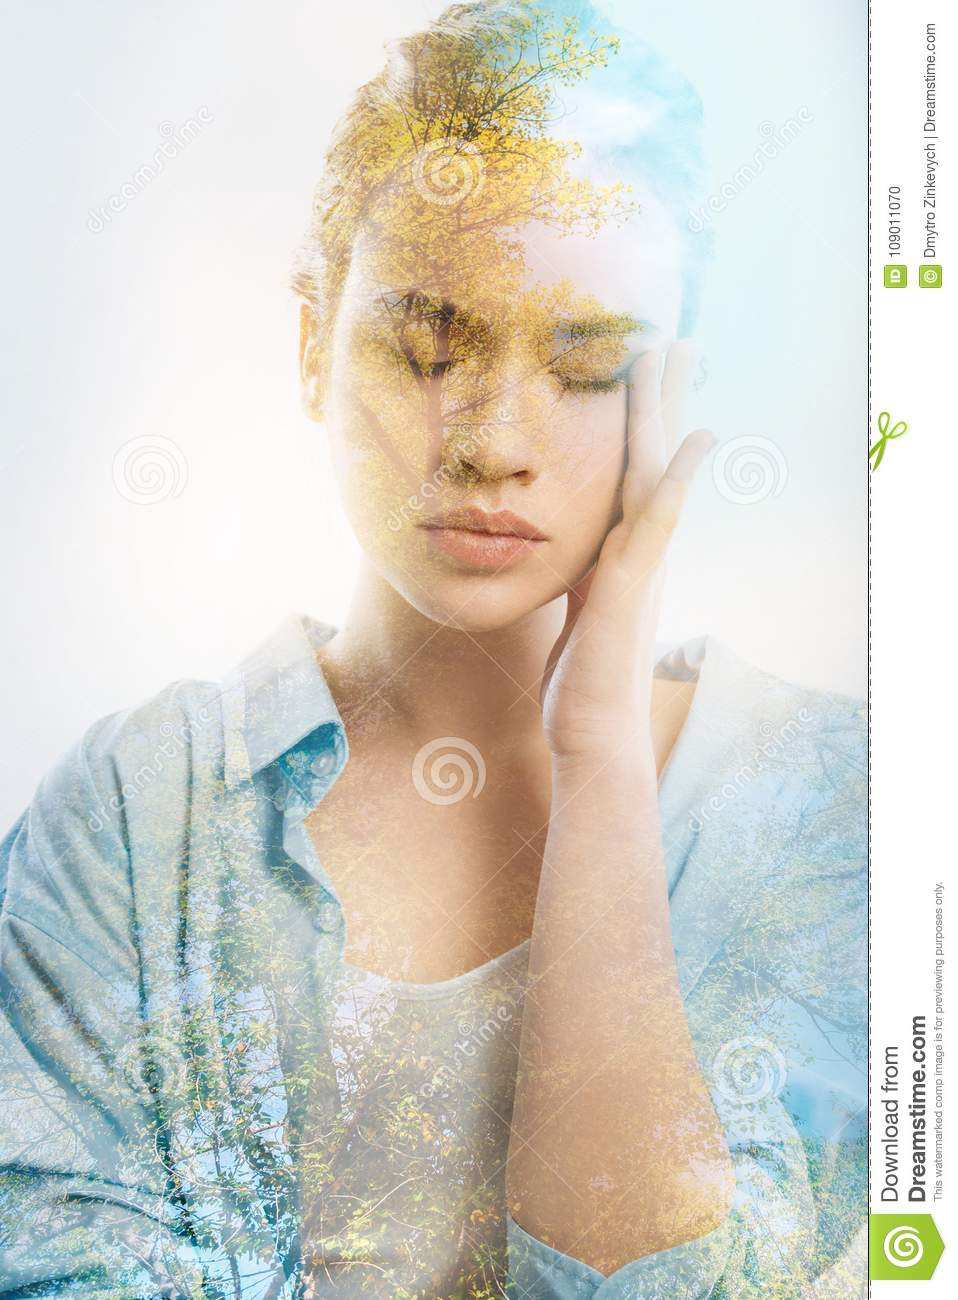 Pretty thoughtful girl touching her face closing eyes.